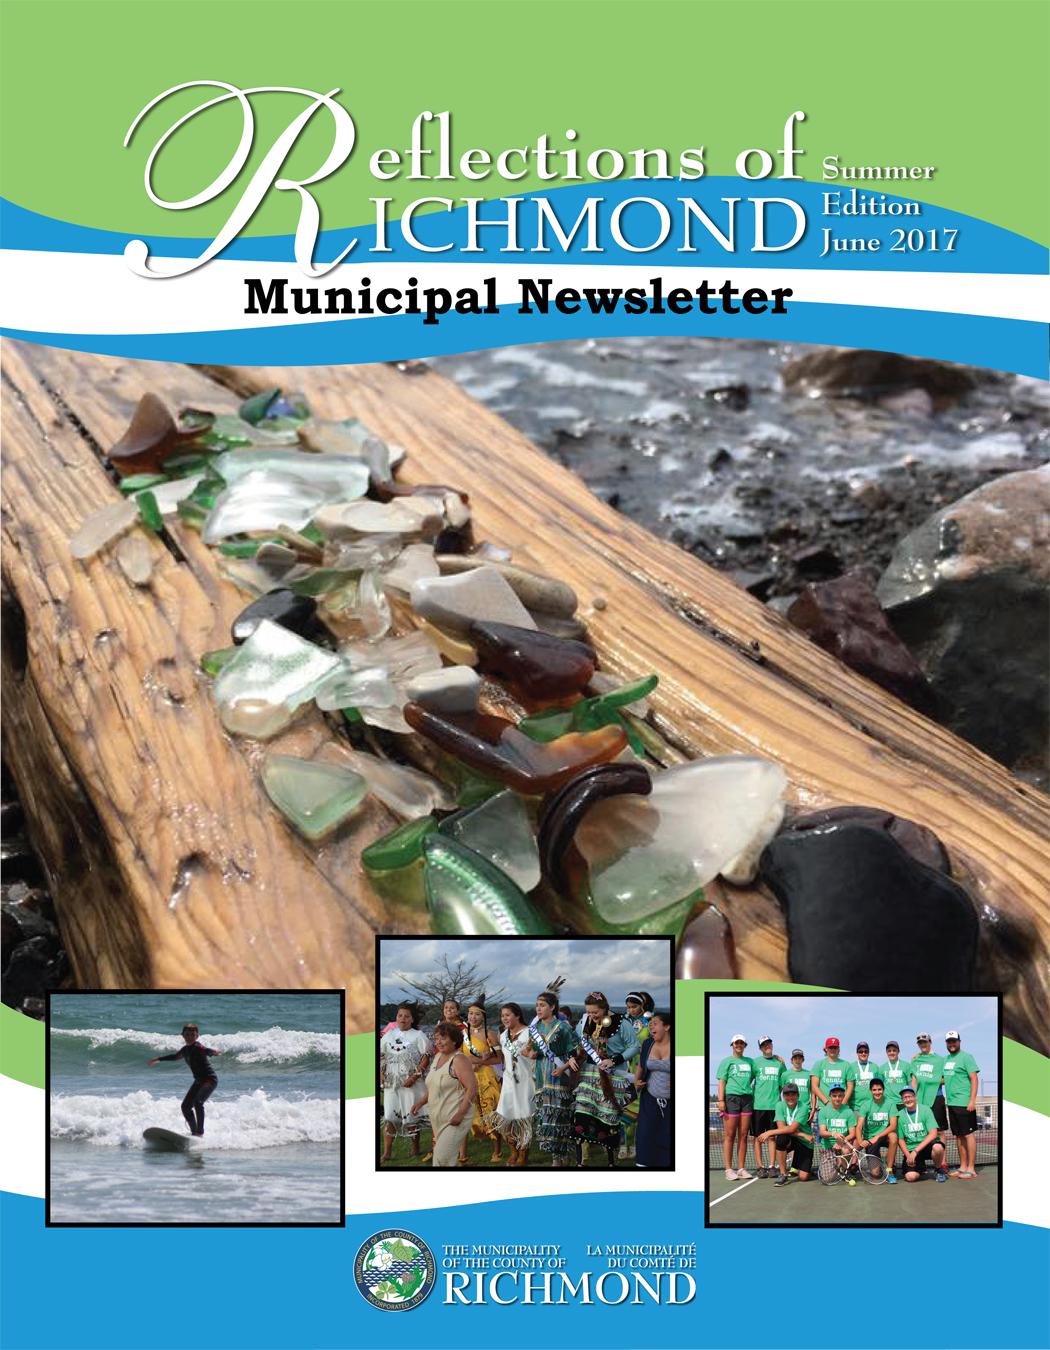 Reflections of Richmond   Summer Edition 2017   June update